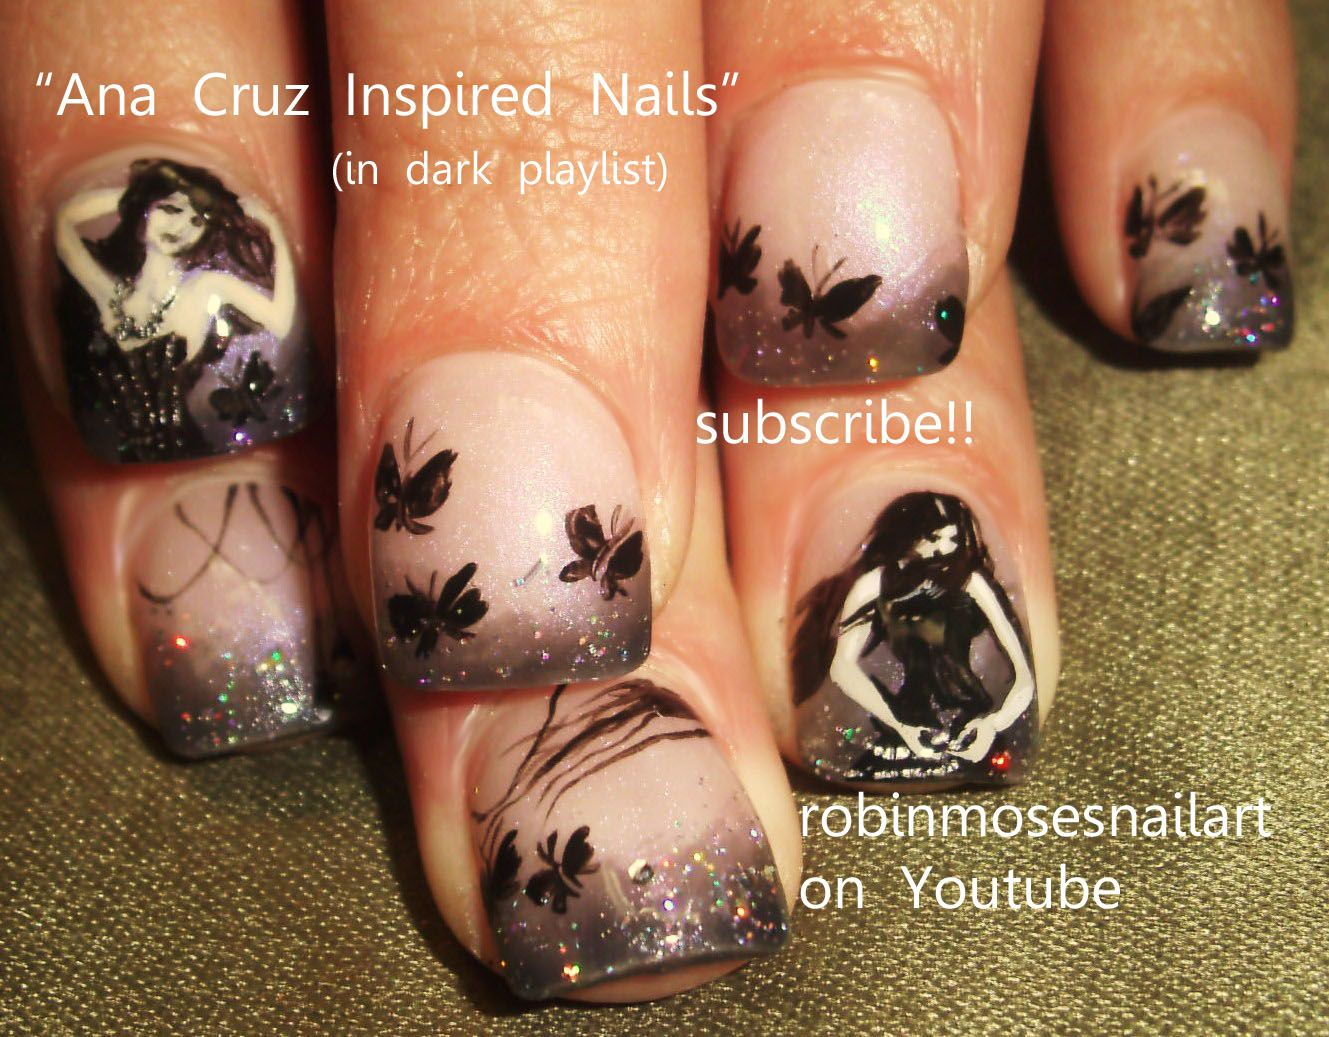 robin moses nail art goth girls with Black Butterflies http://www.youtube.com/watch?v=eZS8W49akh8